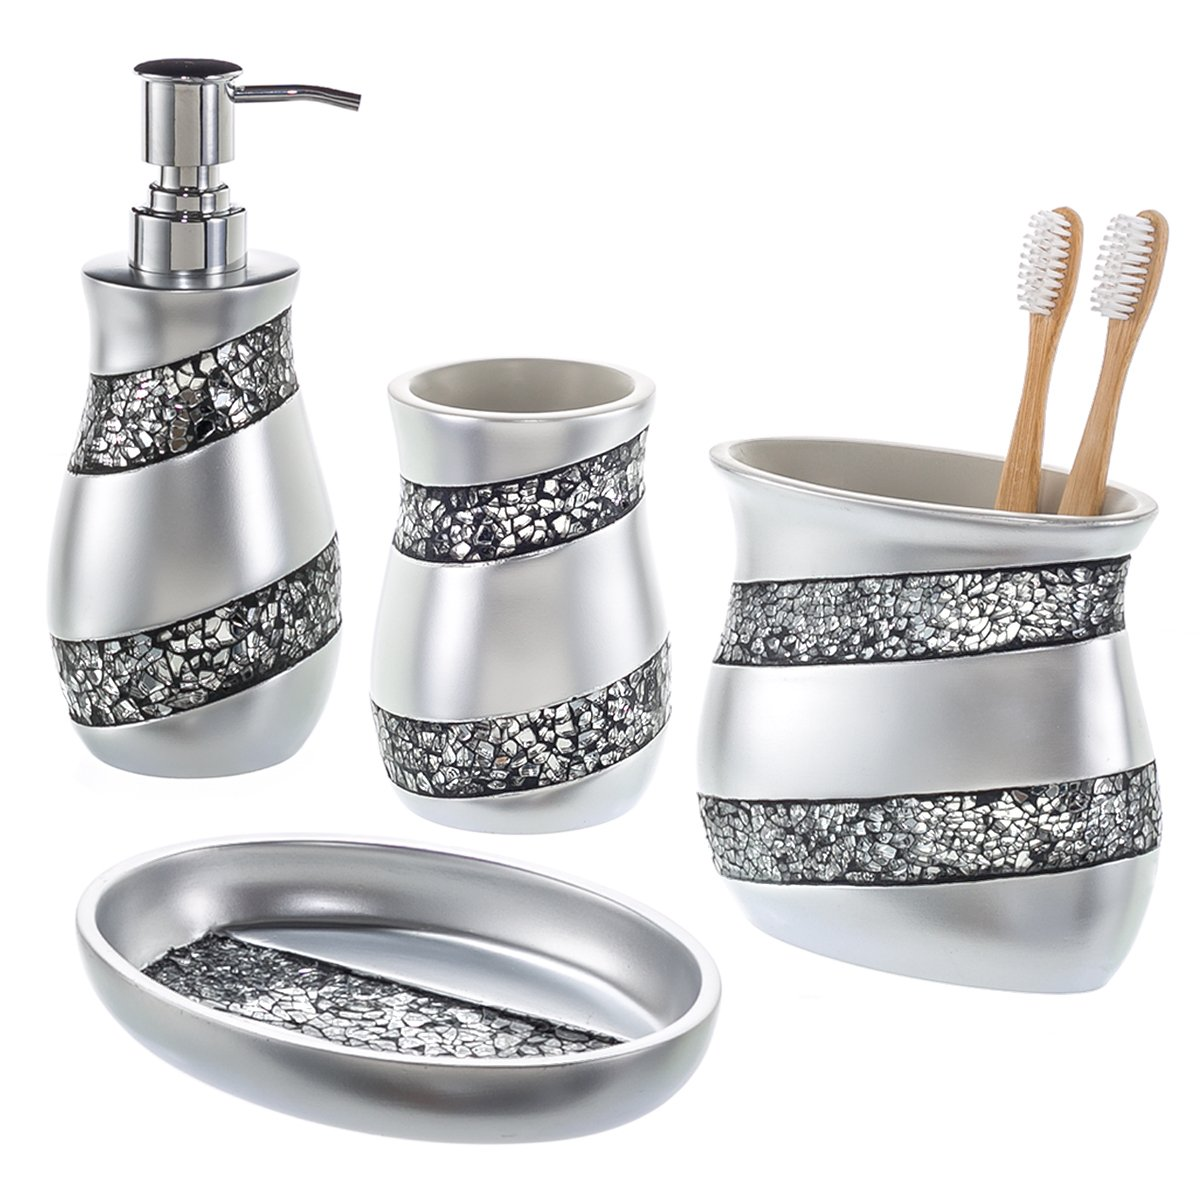 Creative Scents Bathroom Accessories, 4-Piece Mosaic Glass